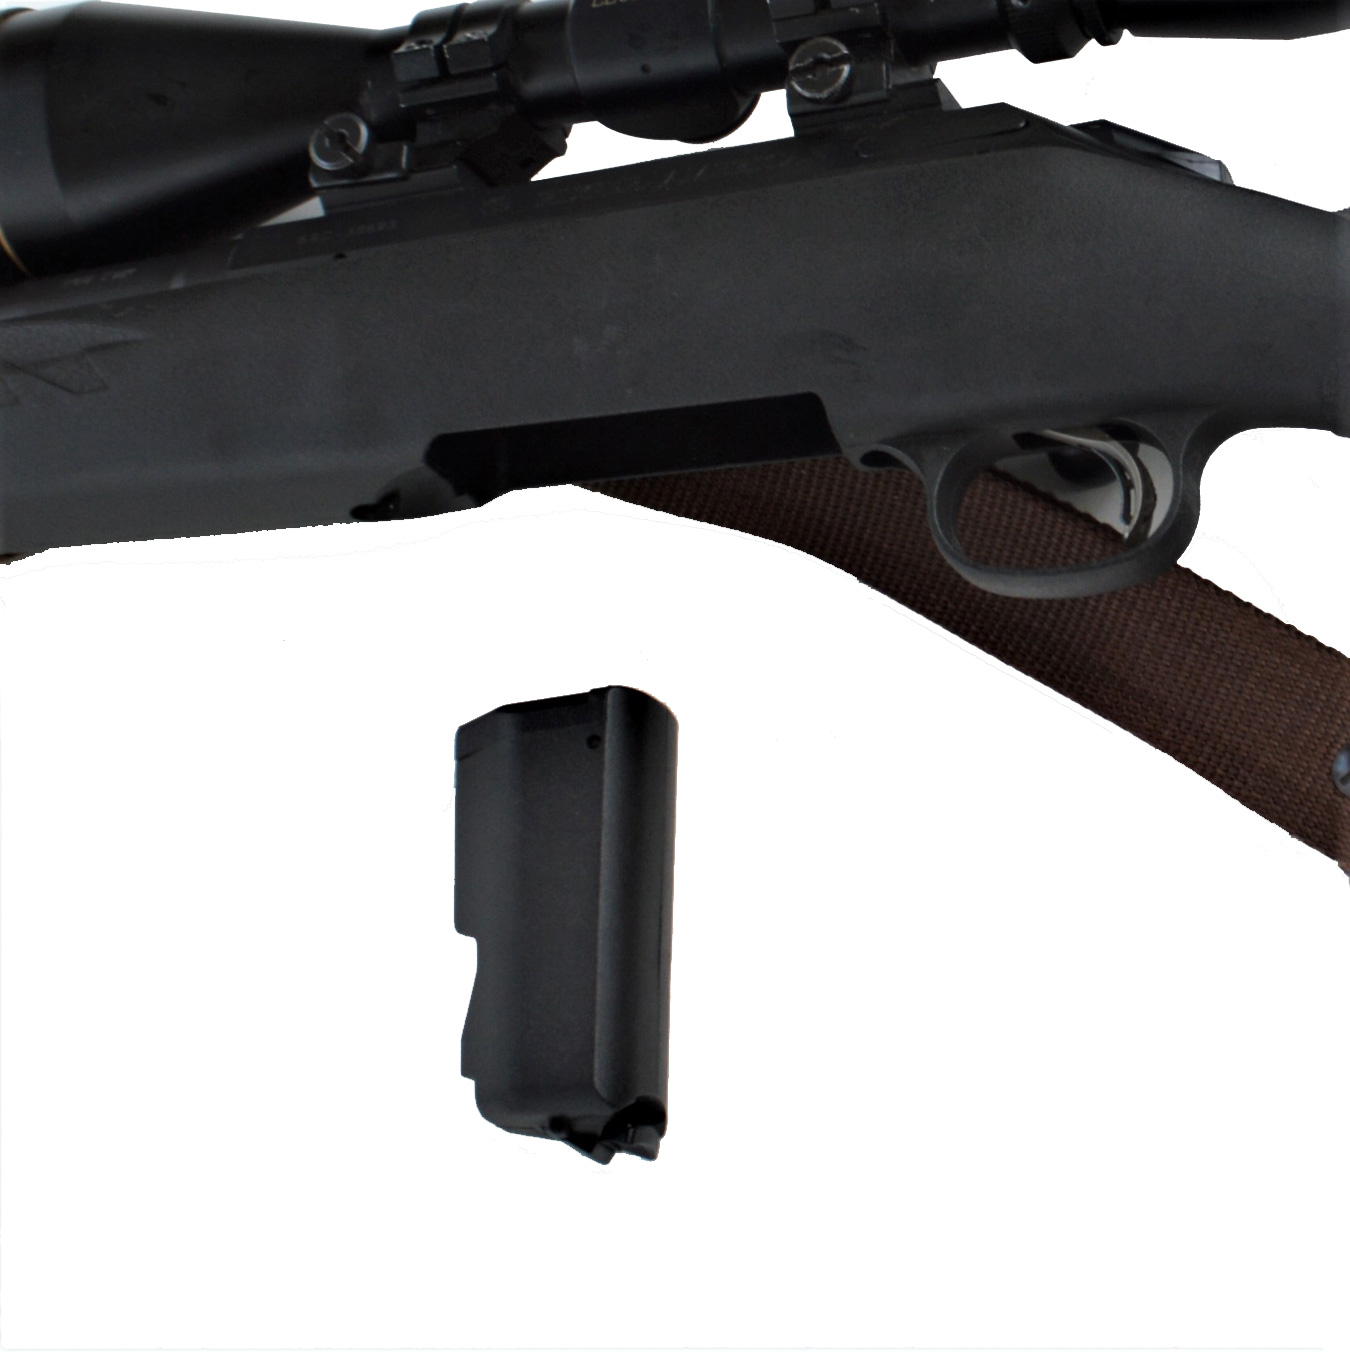 Ruger American rifle with the magazine detached